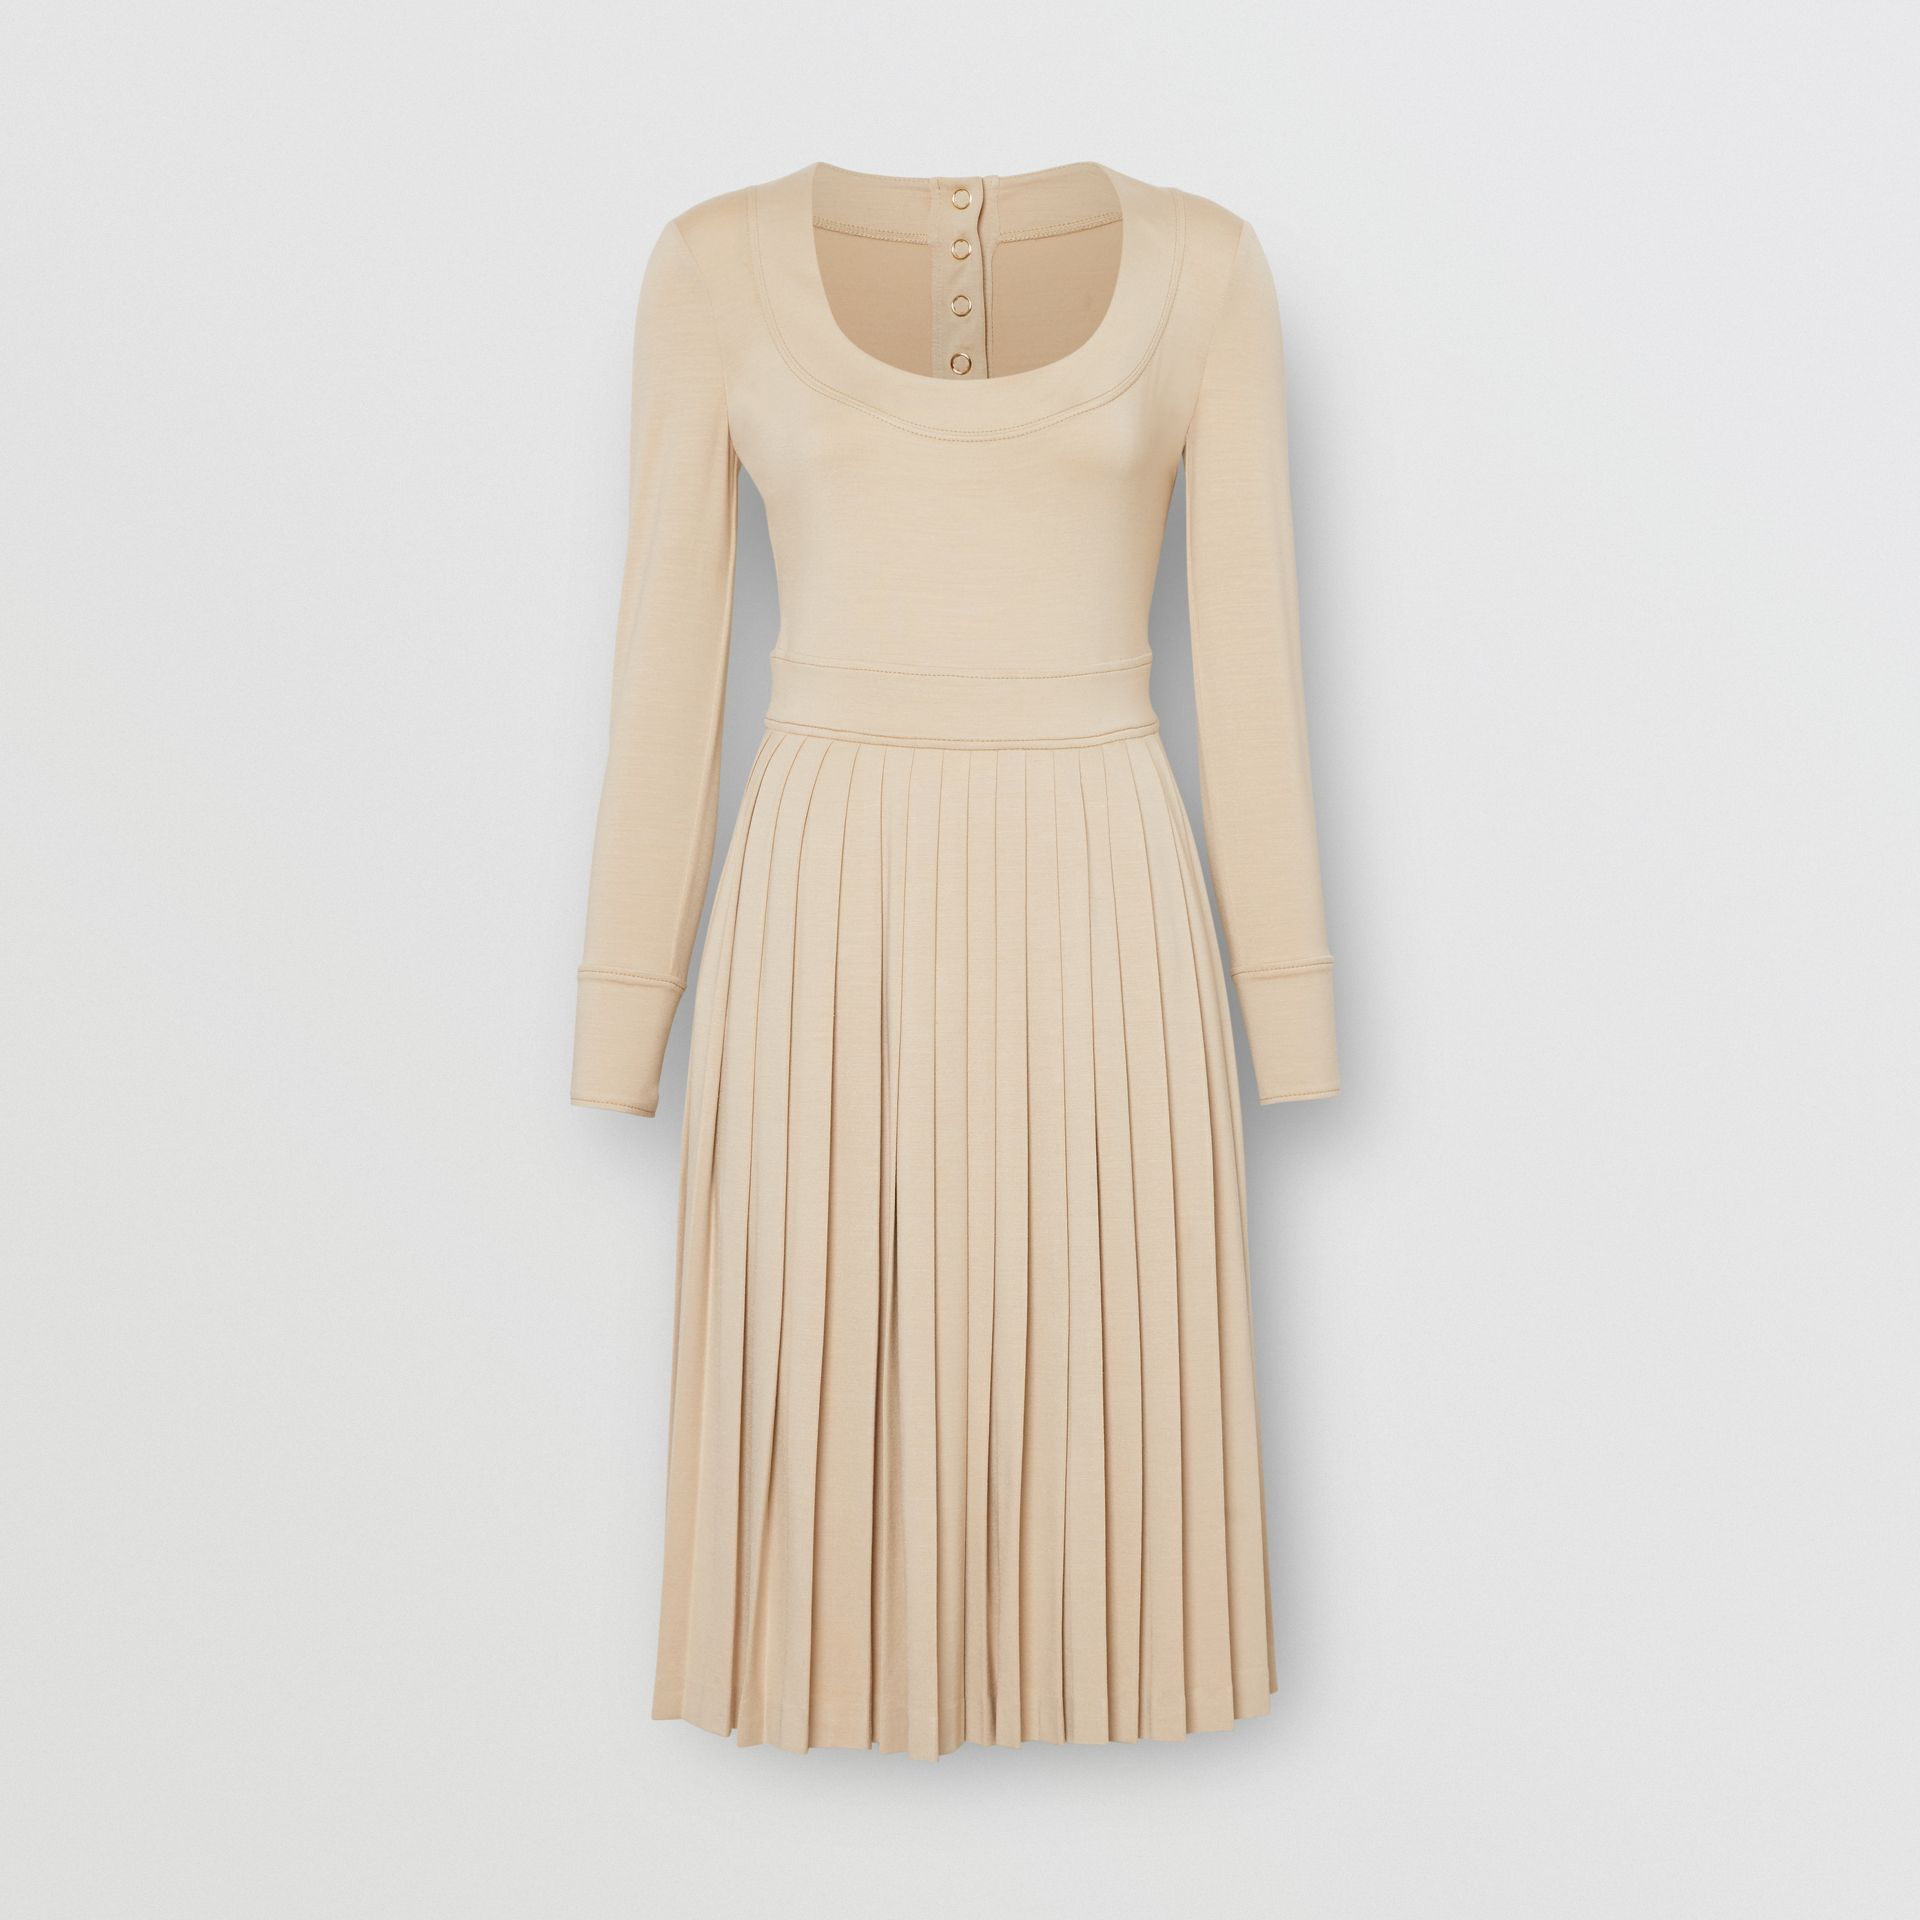 Long-sleeve Pleated Dress in Teddy Beige - Women | Burberry Hong Kong S.A.R - gallery image 3